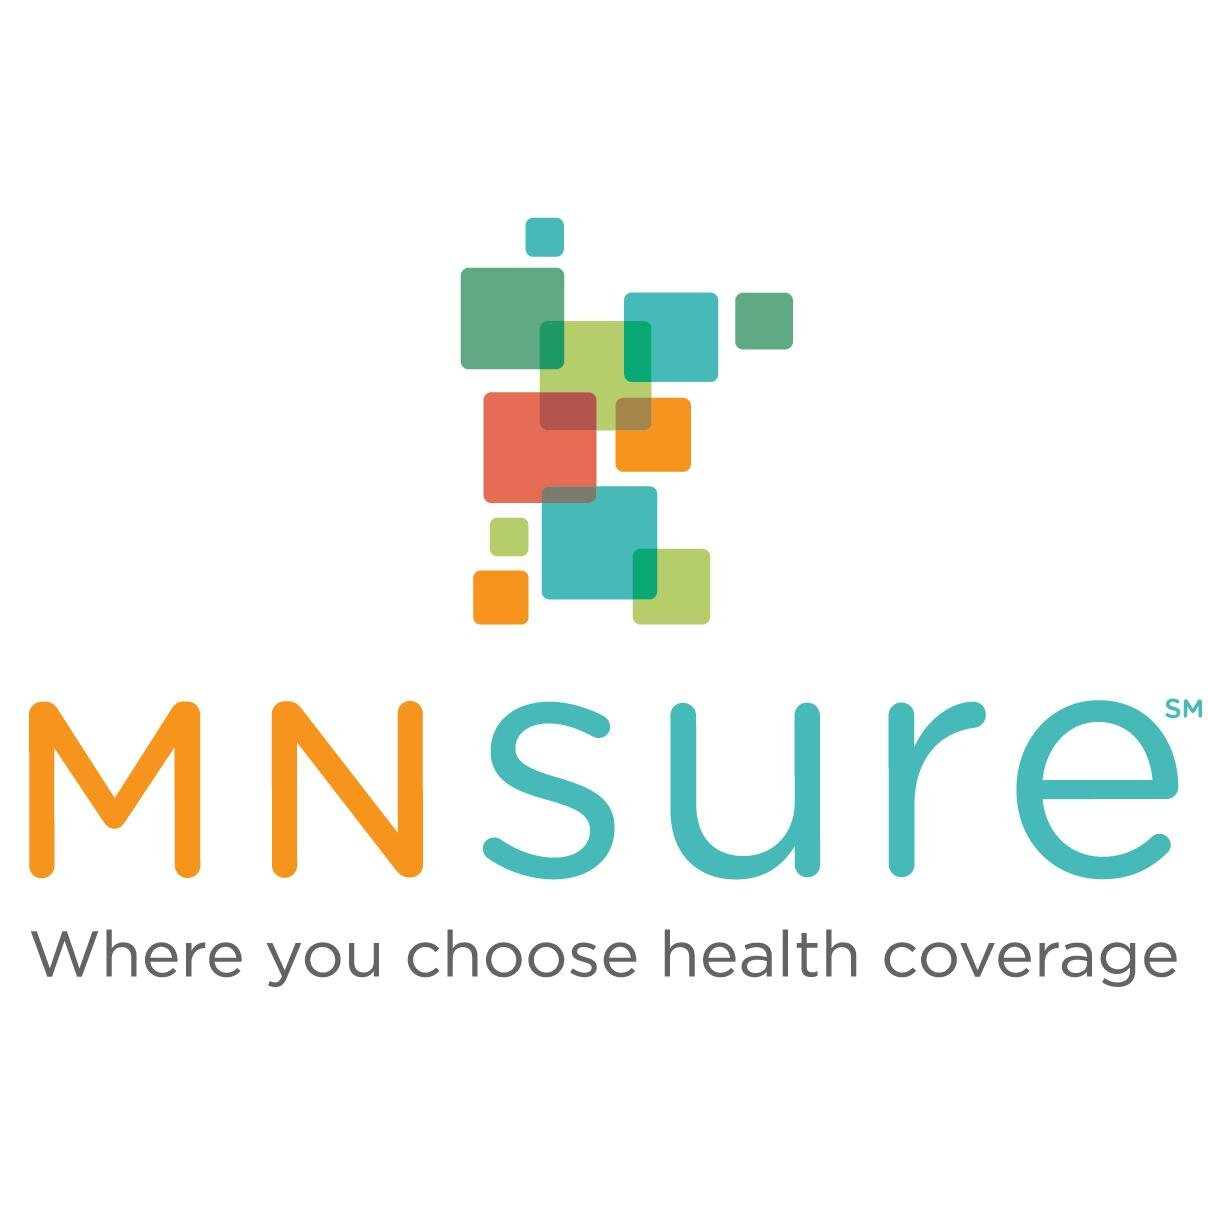 Renewal notices may shock MNsure users